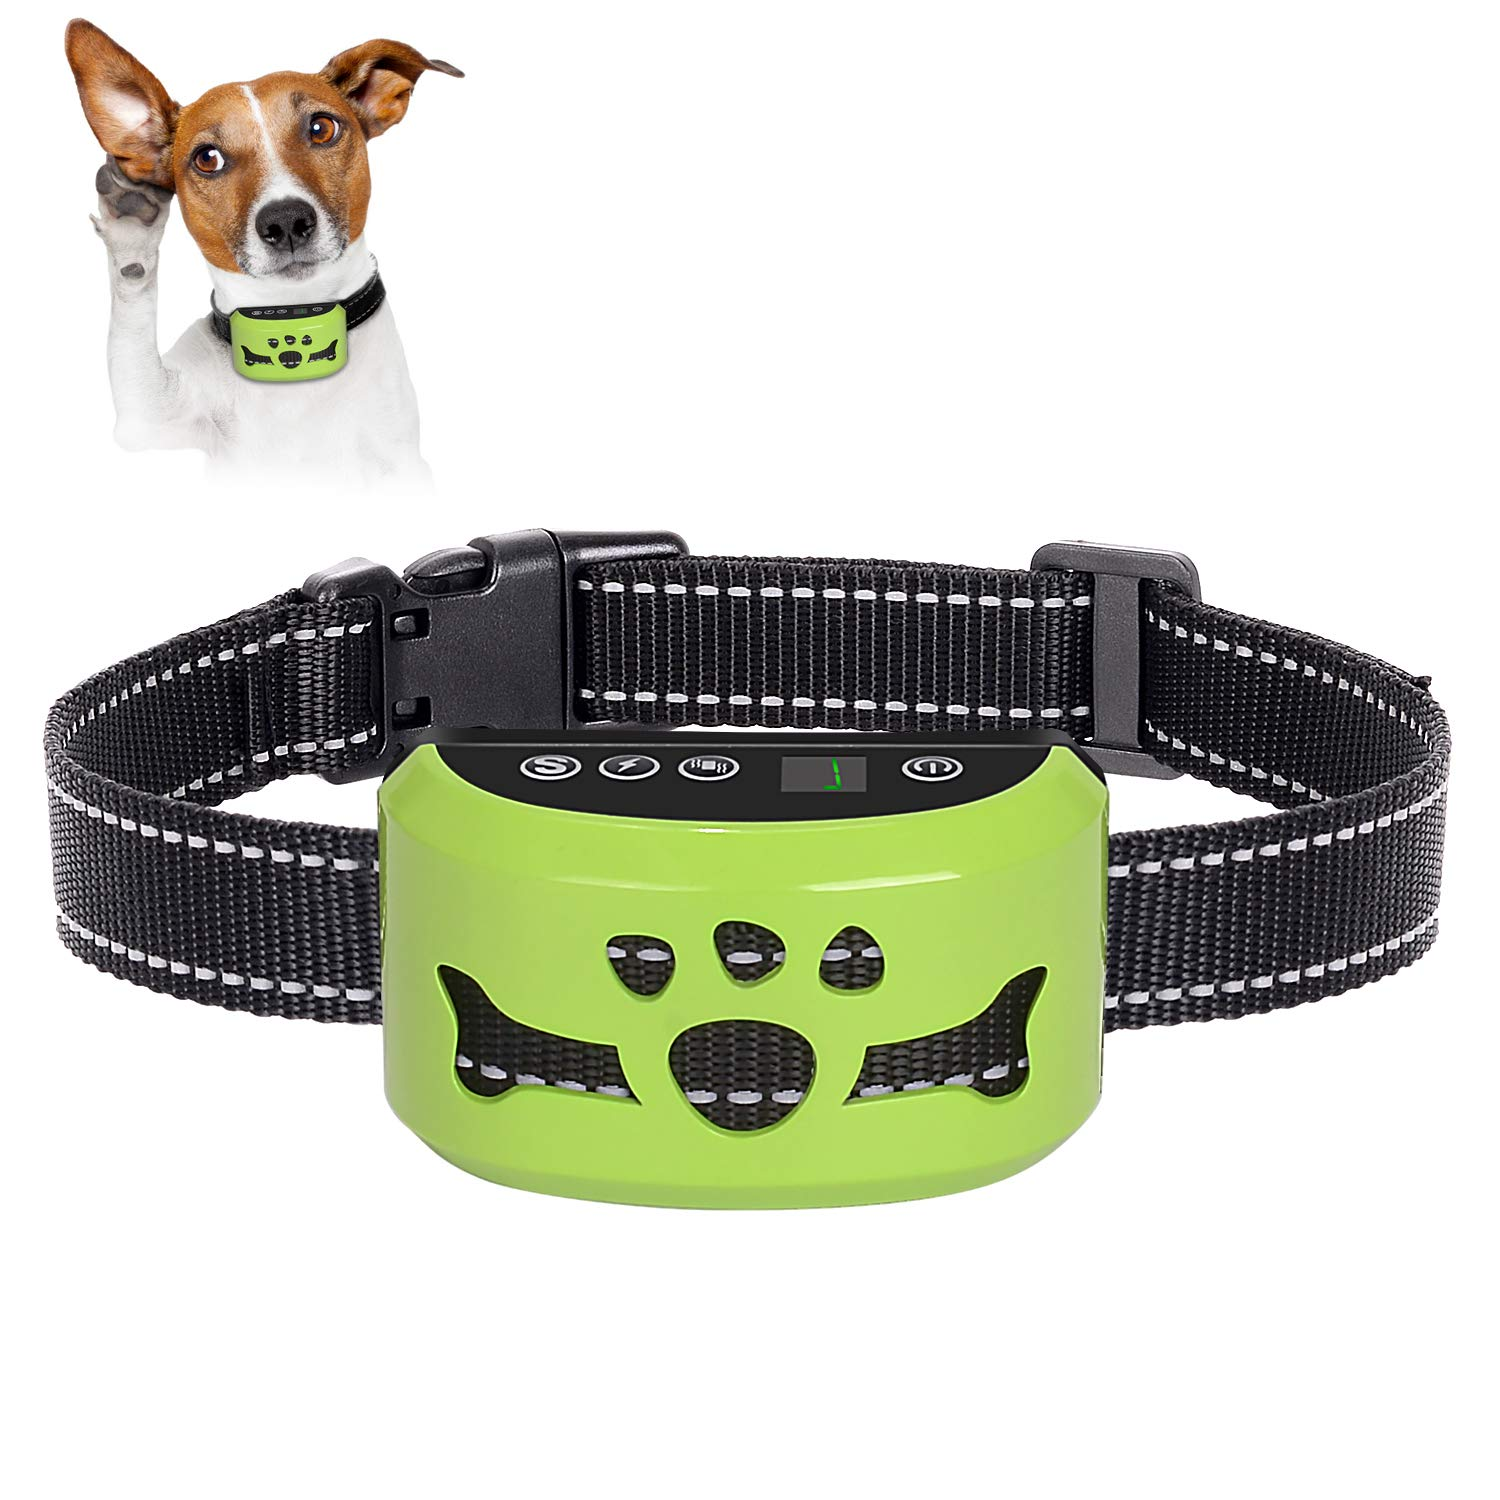 2019 Newest Dog Bark Collar, 7 Adjustable Sensitivity and Intensity Levels – Dual Anti-Barking Modes-Rechargeable – Rainproof No Barking Control Dog shock Collar for Small, Medium, Large Dogs